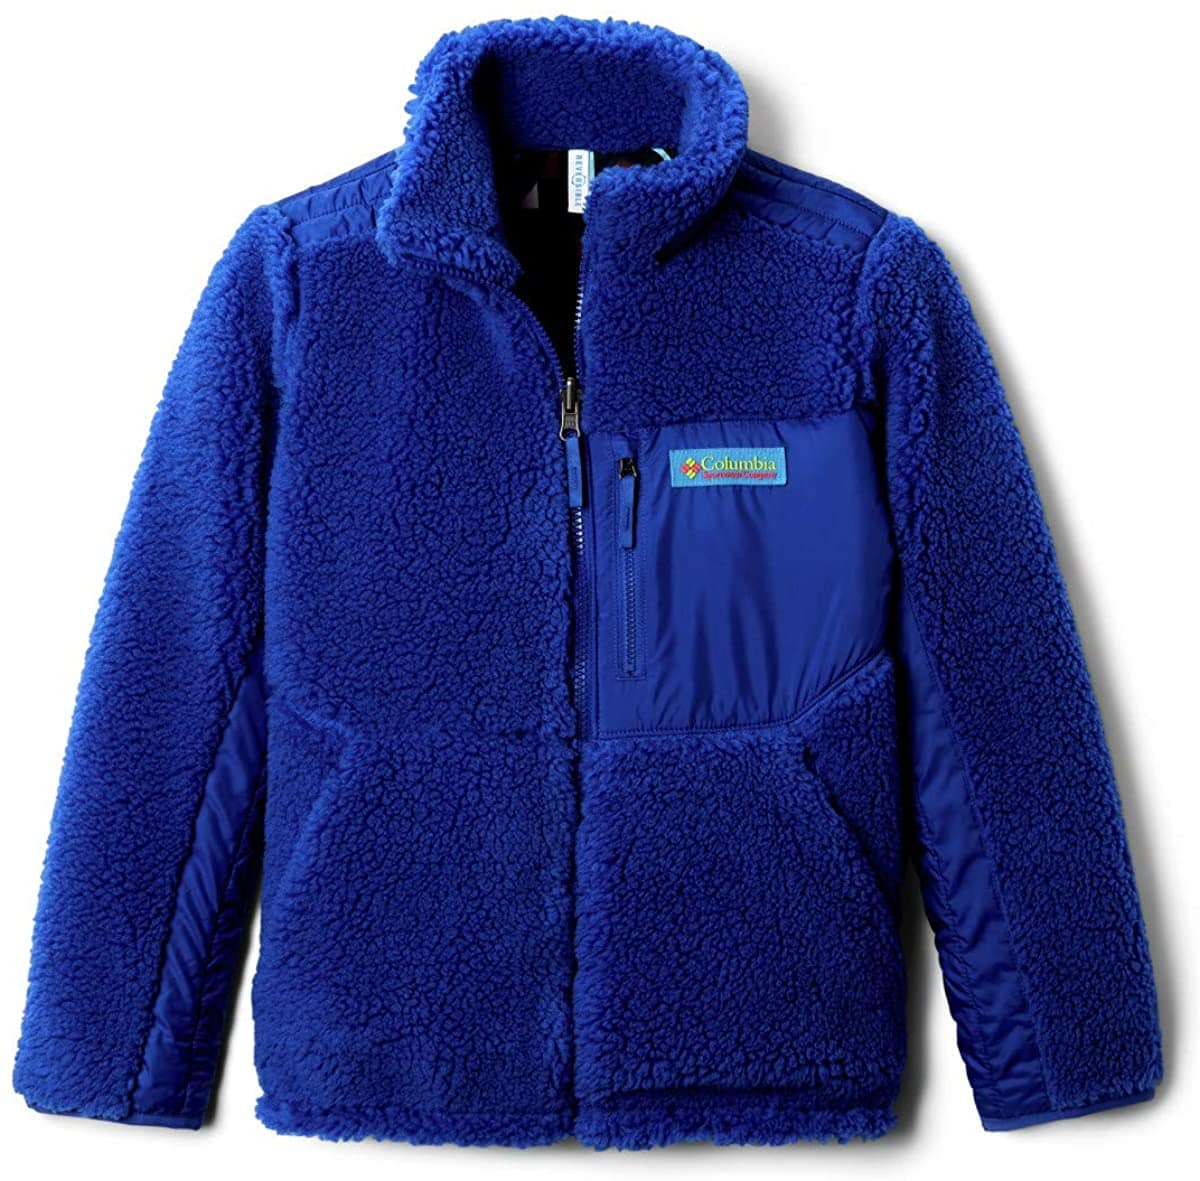 The Archer Ridge is a Sherpa fleece jacket on one side and a windbreaker on the other